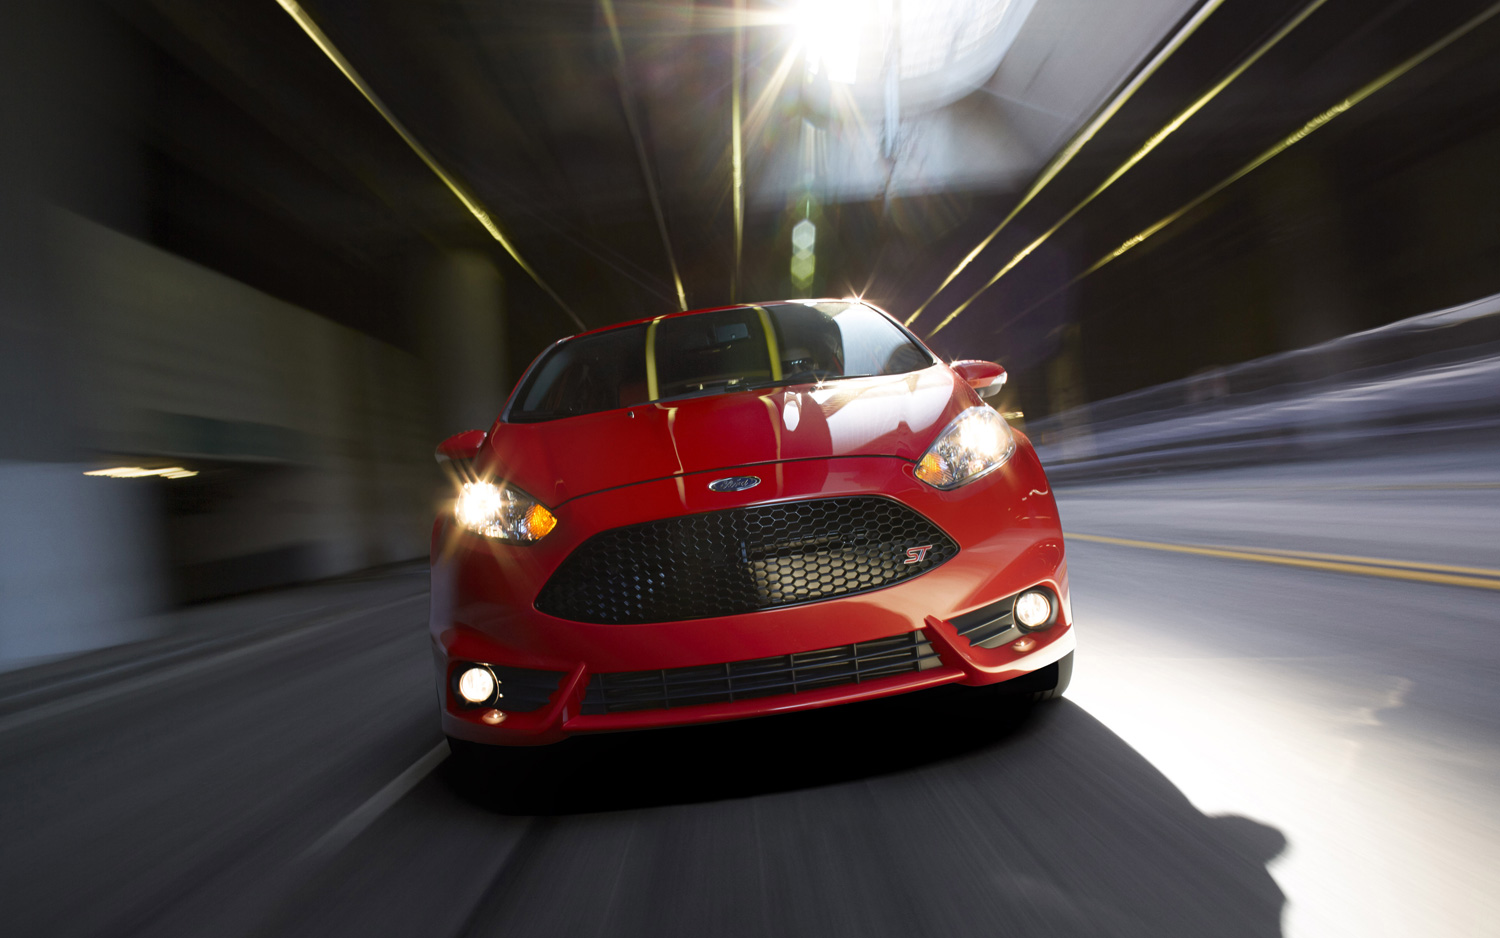 2014 Ford Fiesta Earns Best-in-Class 41 MPG